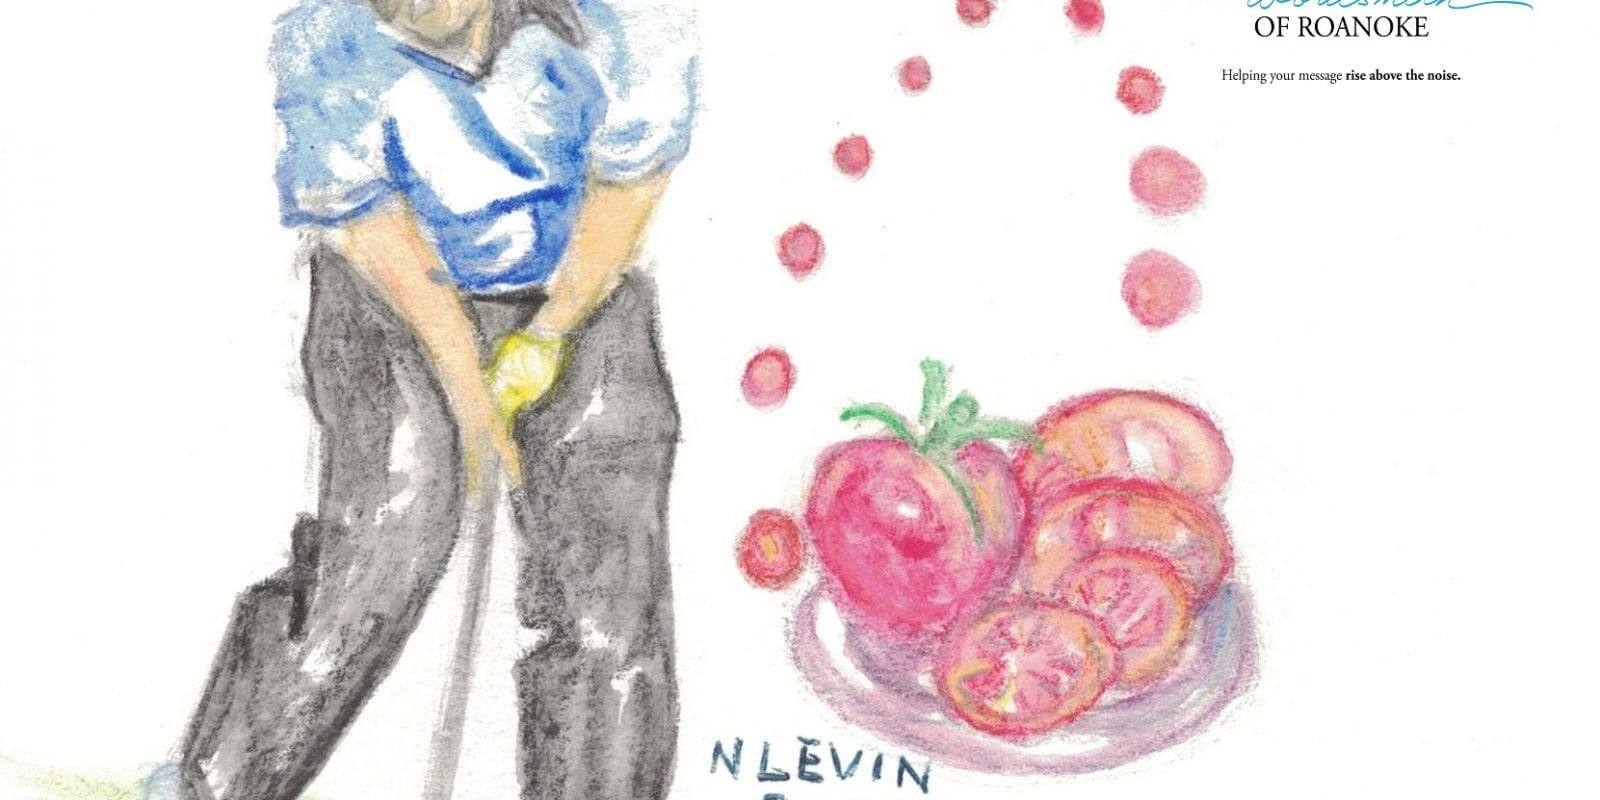 Lee Trevino often compares his golf game to sliced tomatoes in the many metaphors he uses